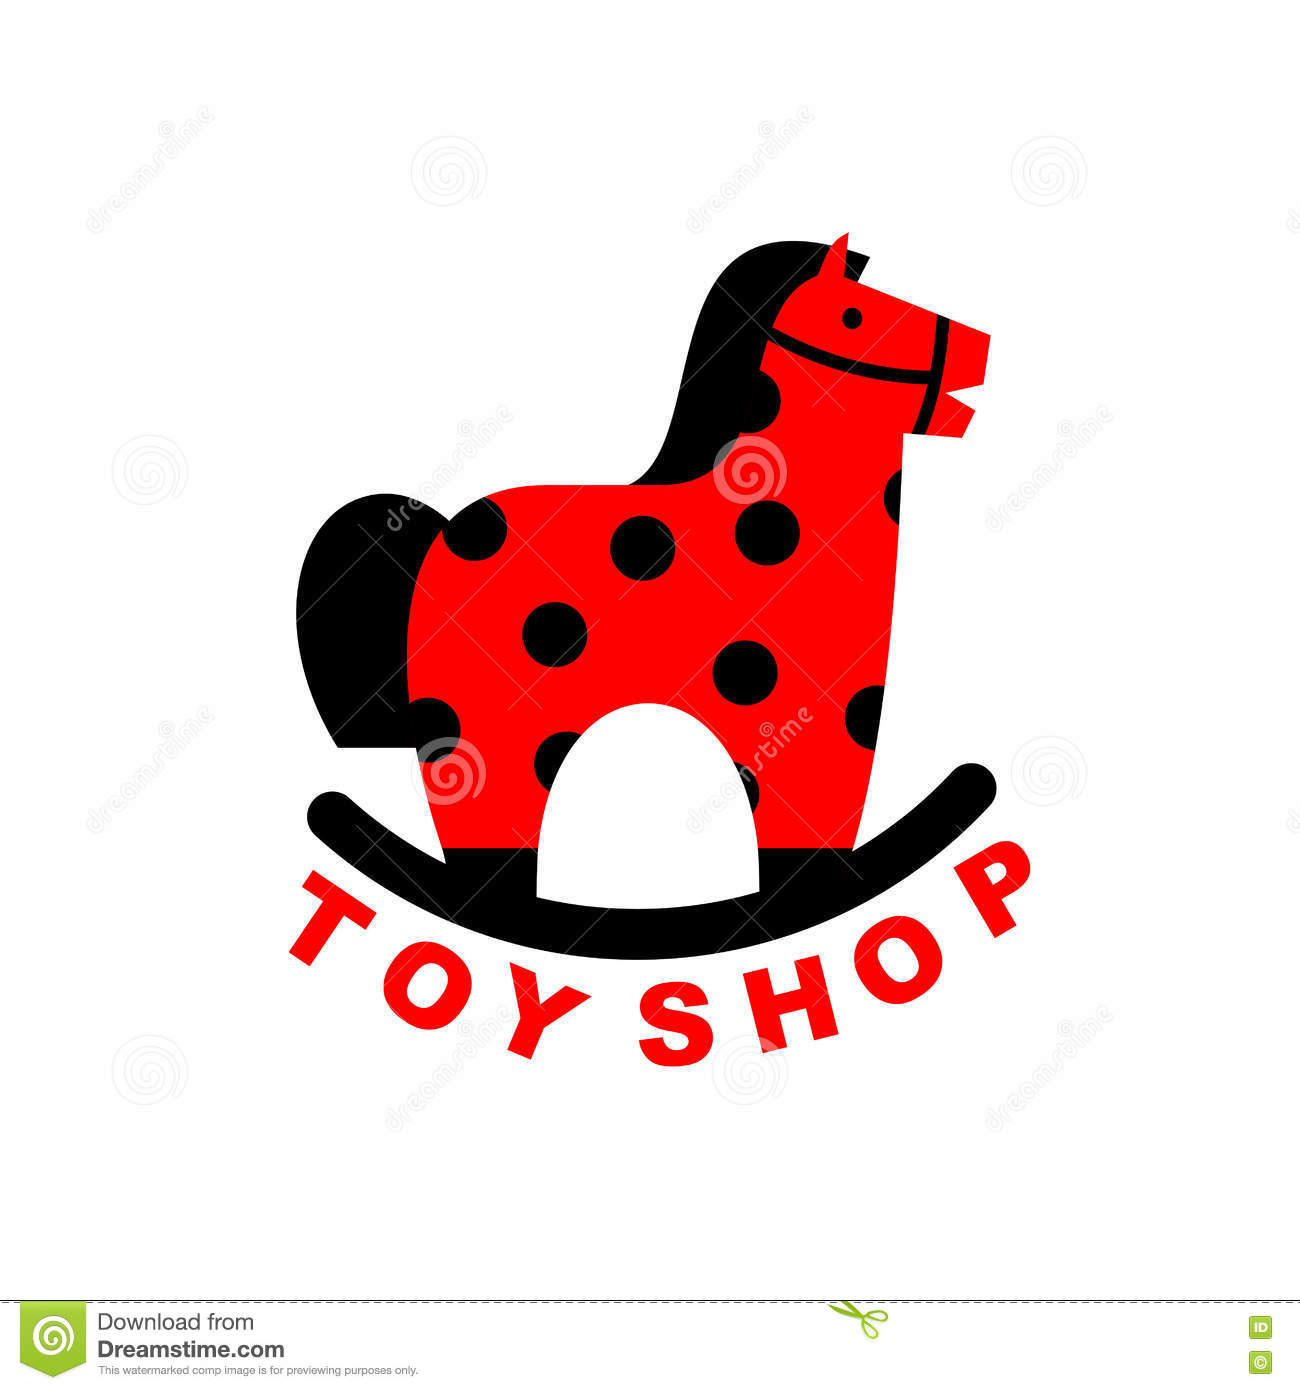 Toy Store Logo : Toy shop logo rocking horse kids apples hoss